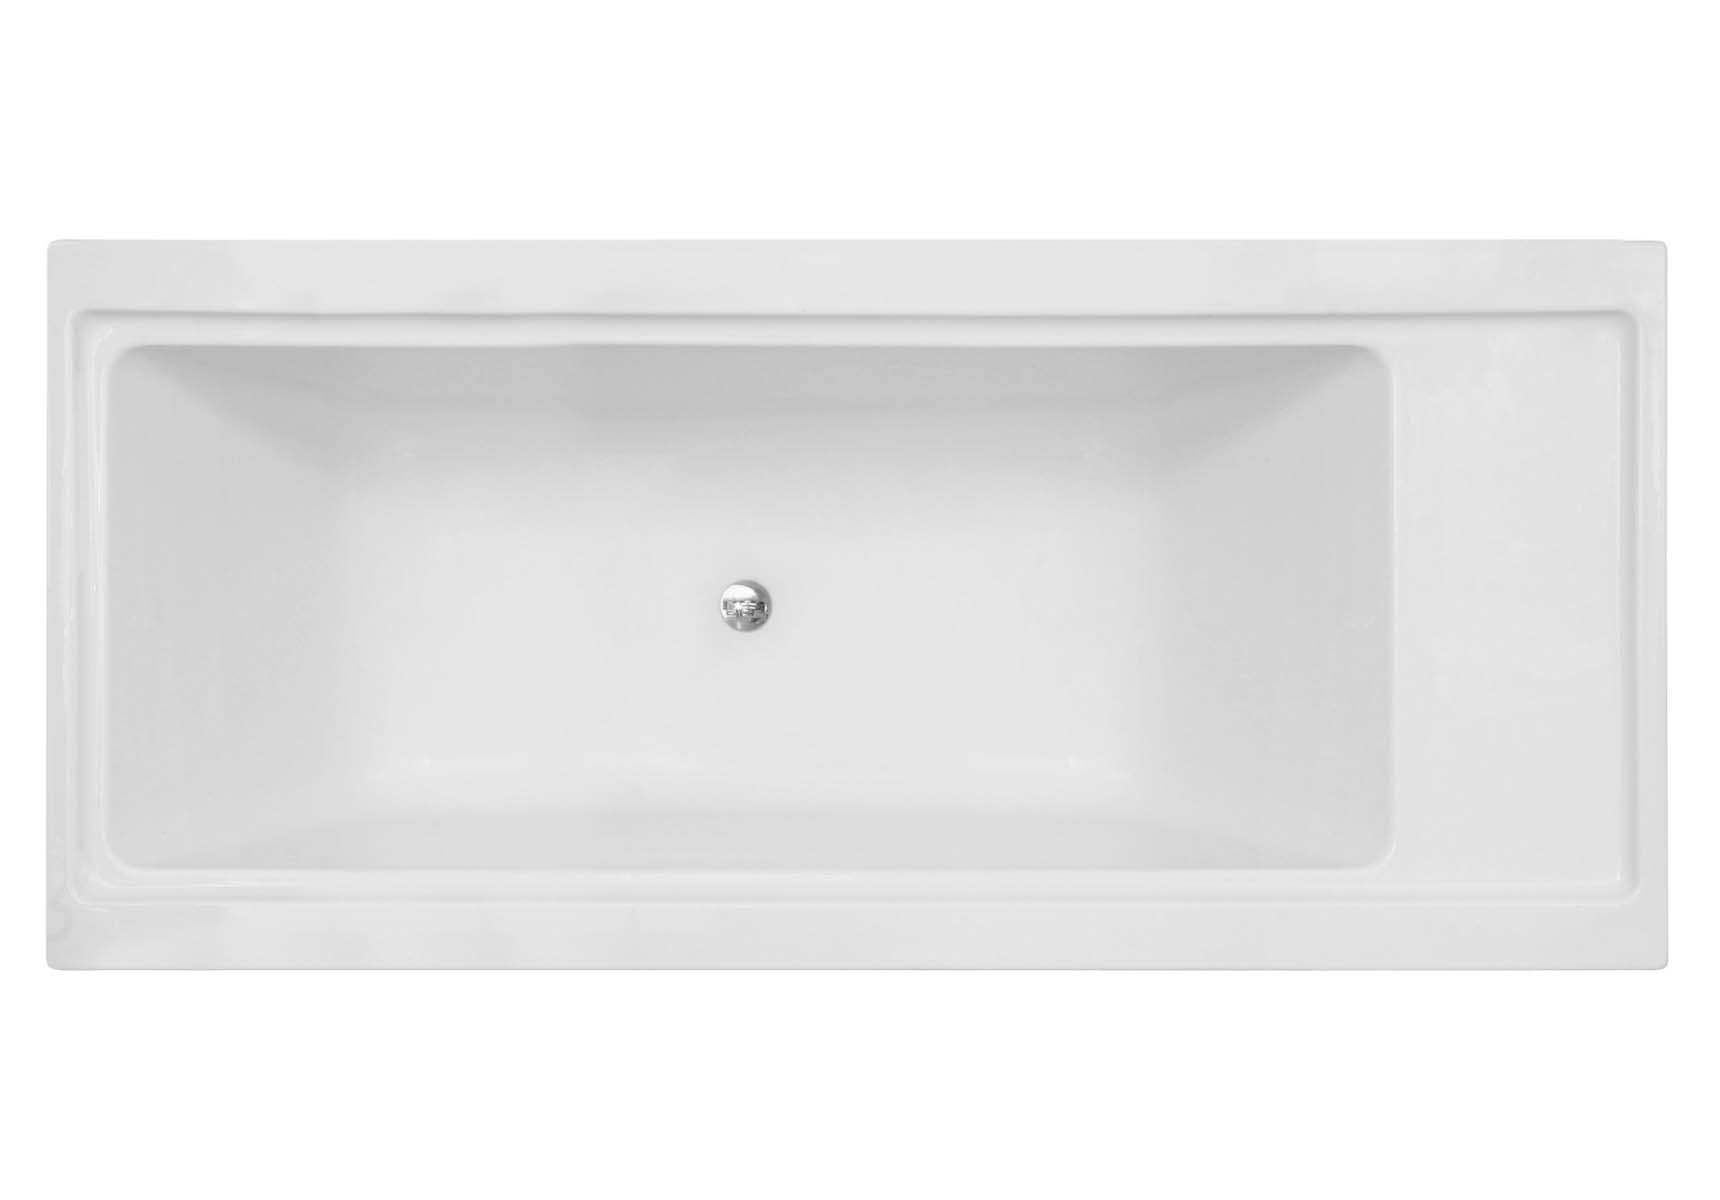 4 Life Pure 200x90 cm Rectangular/Double Ended Bathtub